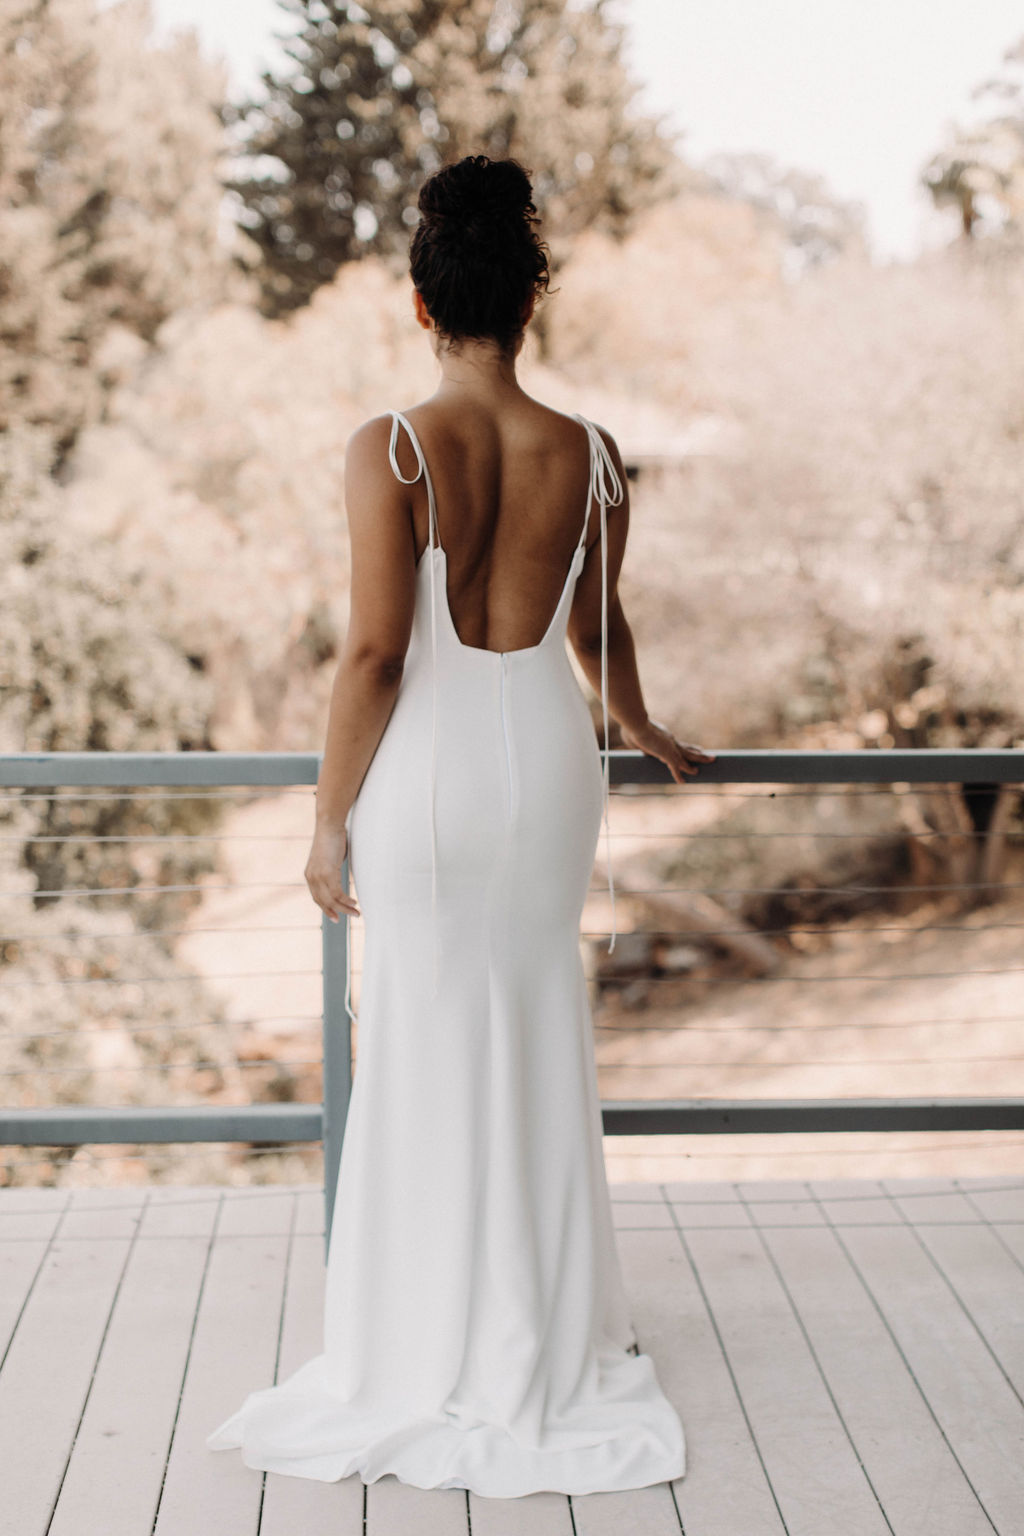 The Best Modern Wedding Dresses for 2022 Brides by The Law Bridal – Bridal Musings 33